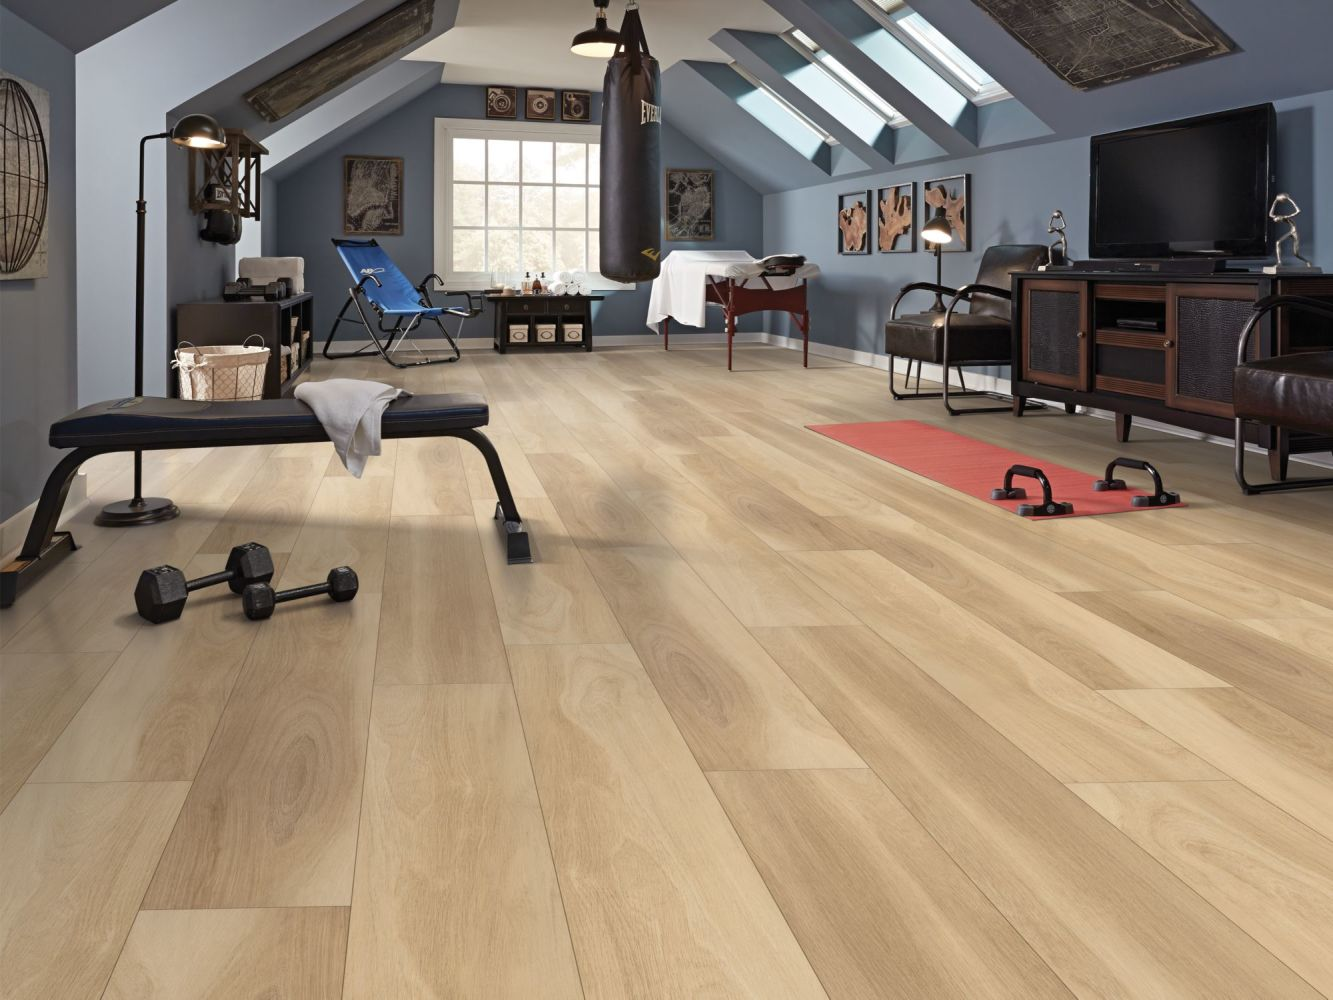 Shaw Floors Resilient Residential Intrepid HD Plus Natural Oak 02000_2024V